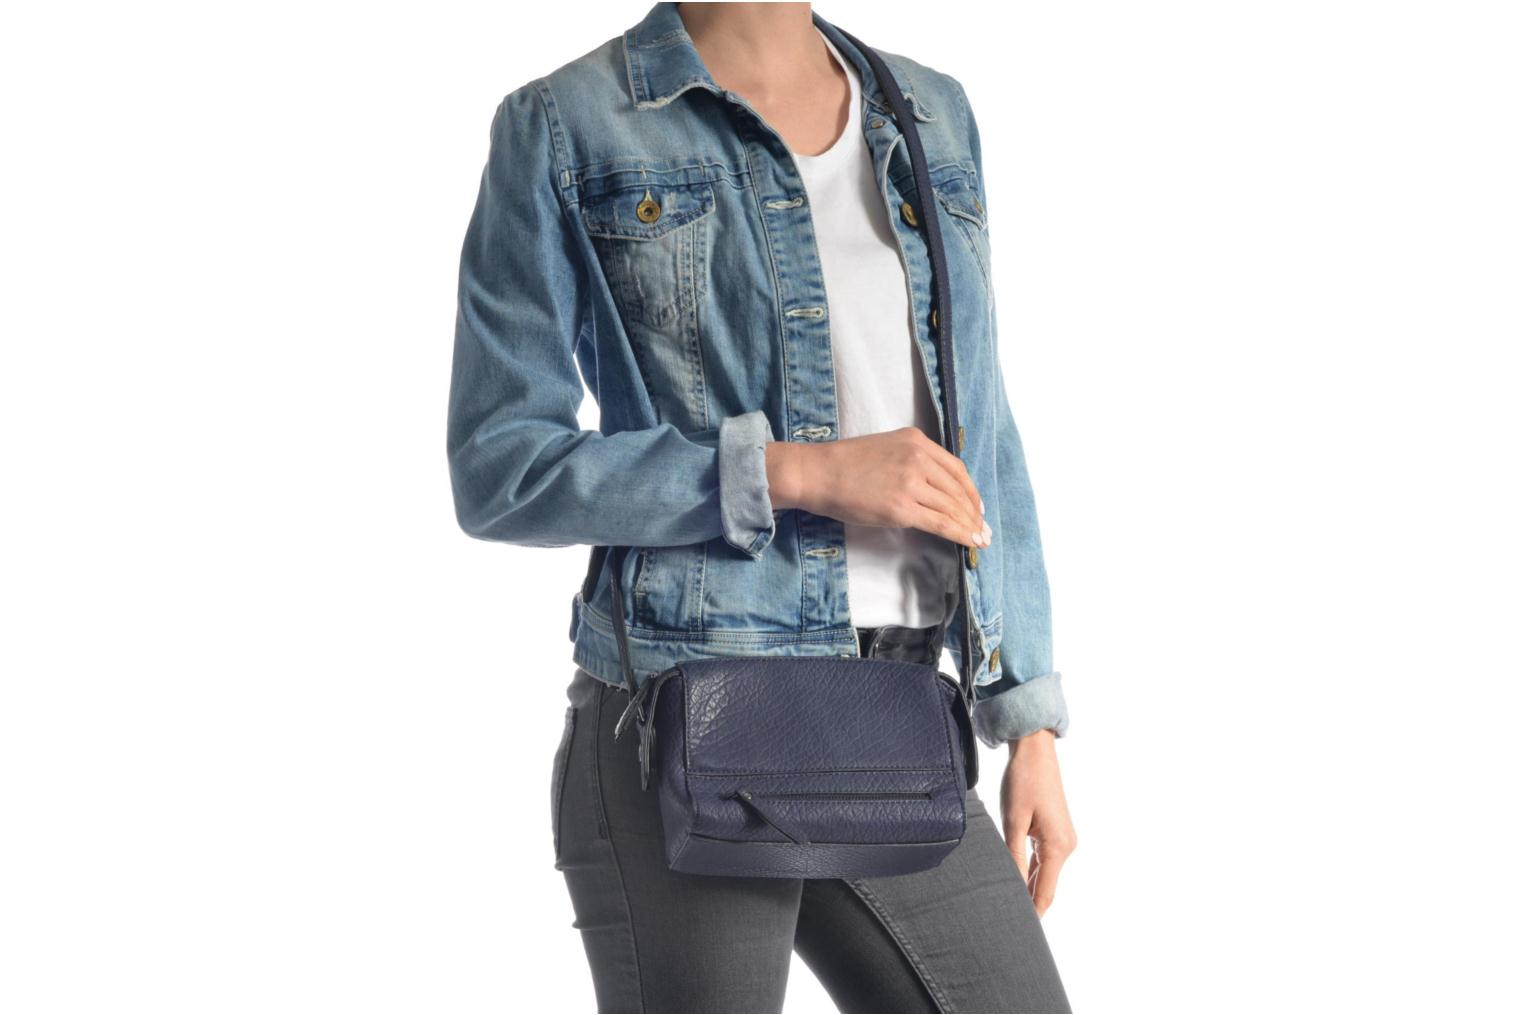 Laney Crossbody Pieces Laney Pieces Blazer Navy Blazer Crossbody Navy Laney Navy Laney Pieces Crossbody Blazer Pieces Navy Crossbody FpwqI8U